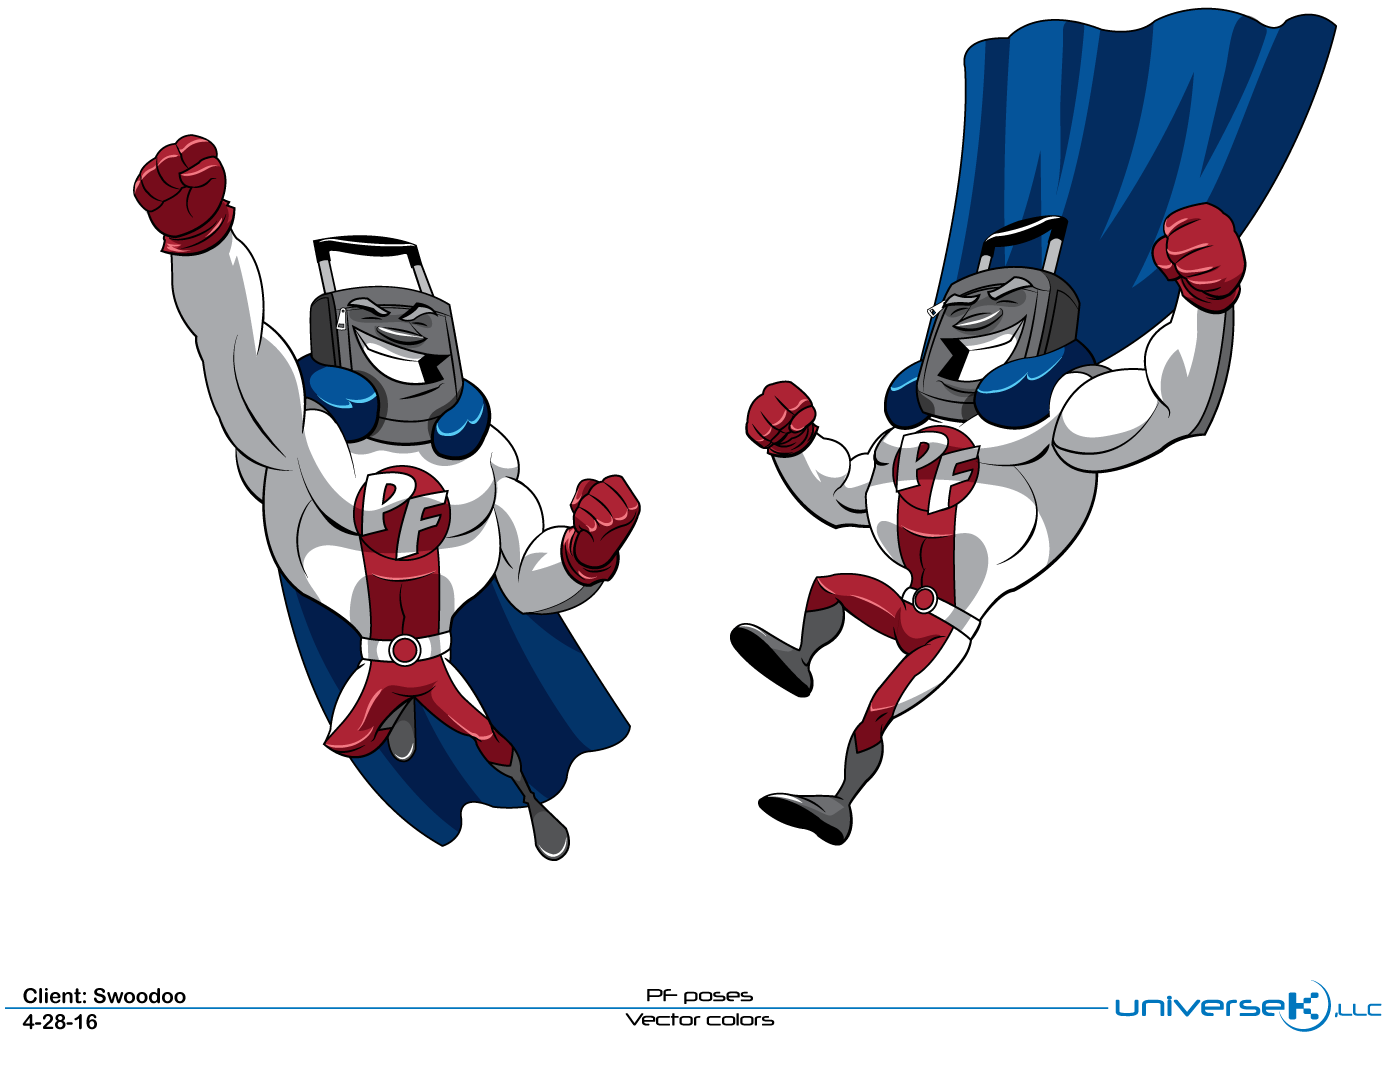 swoodoo_cDesign_poses_color